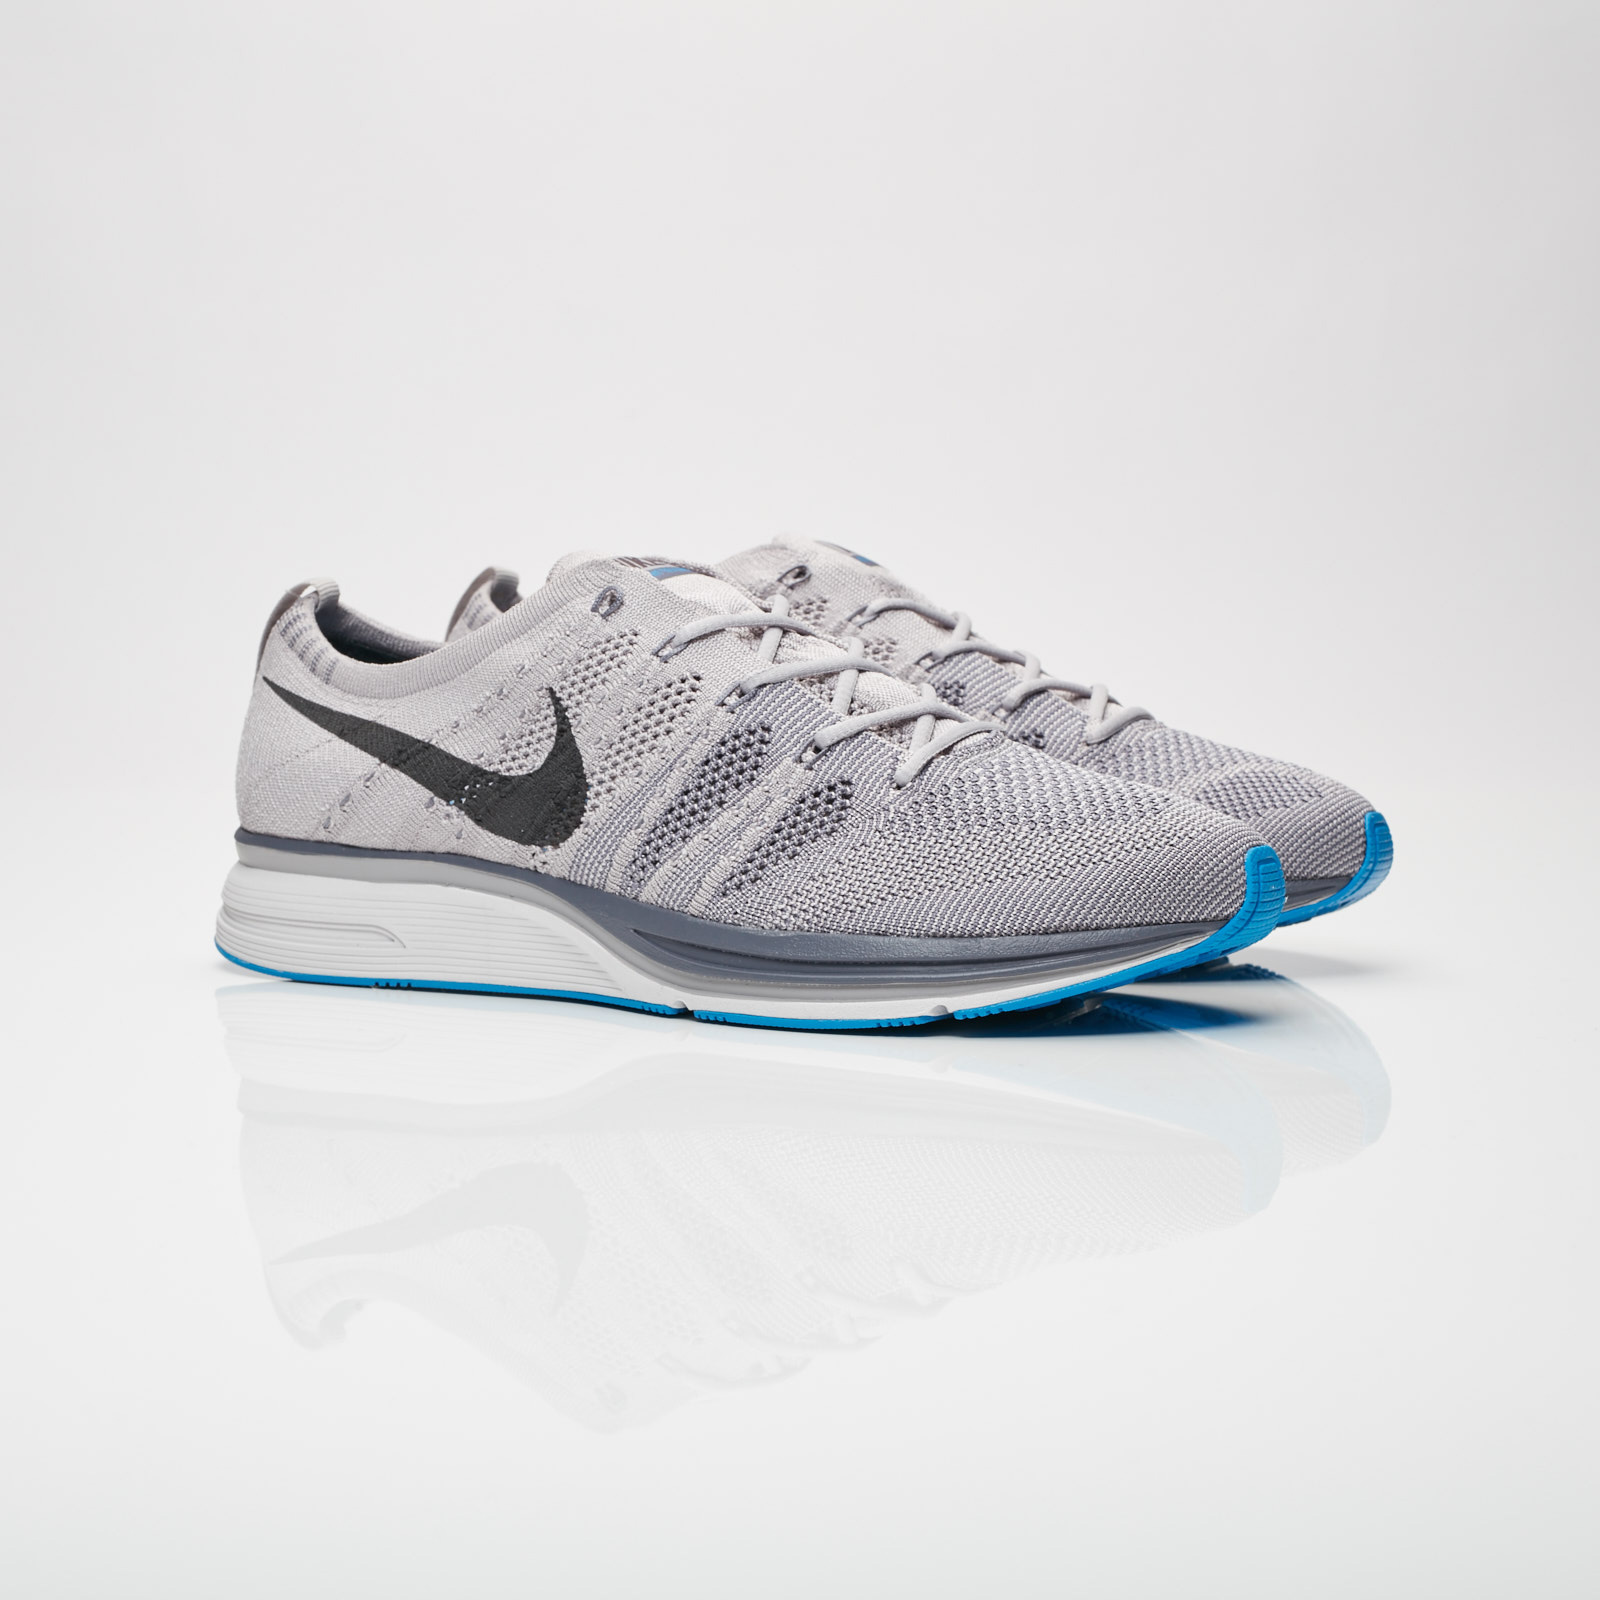 Nike NikeLab Flyknit Trainer Sneakers clearance low price fee shipping xOQUAyOX